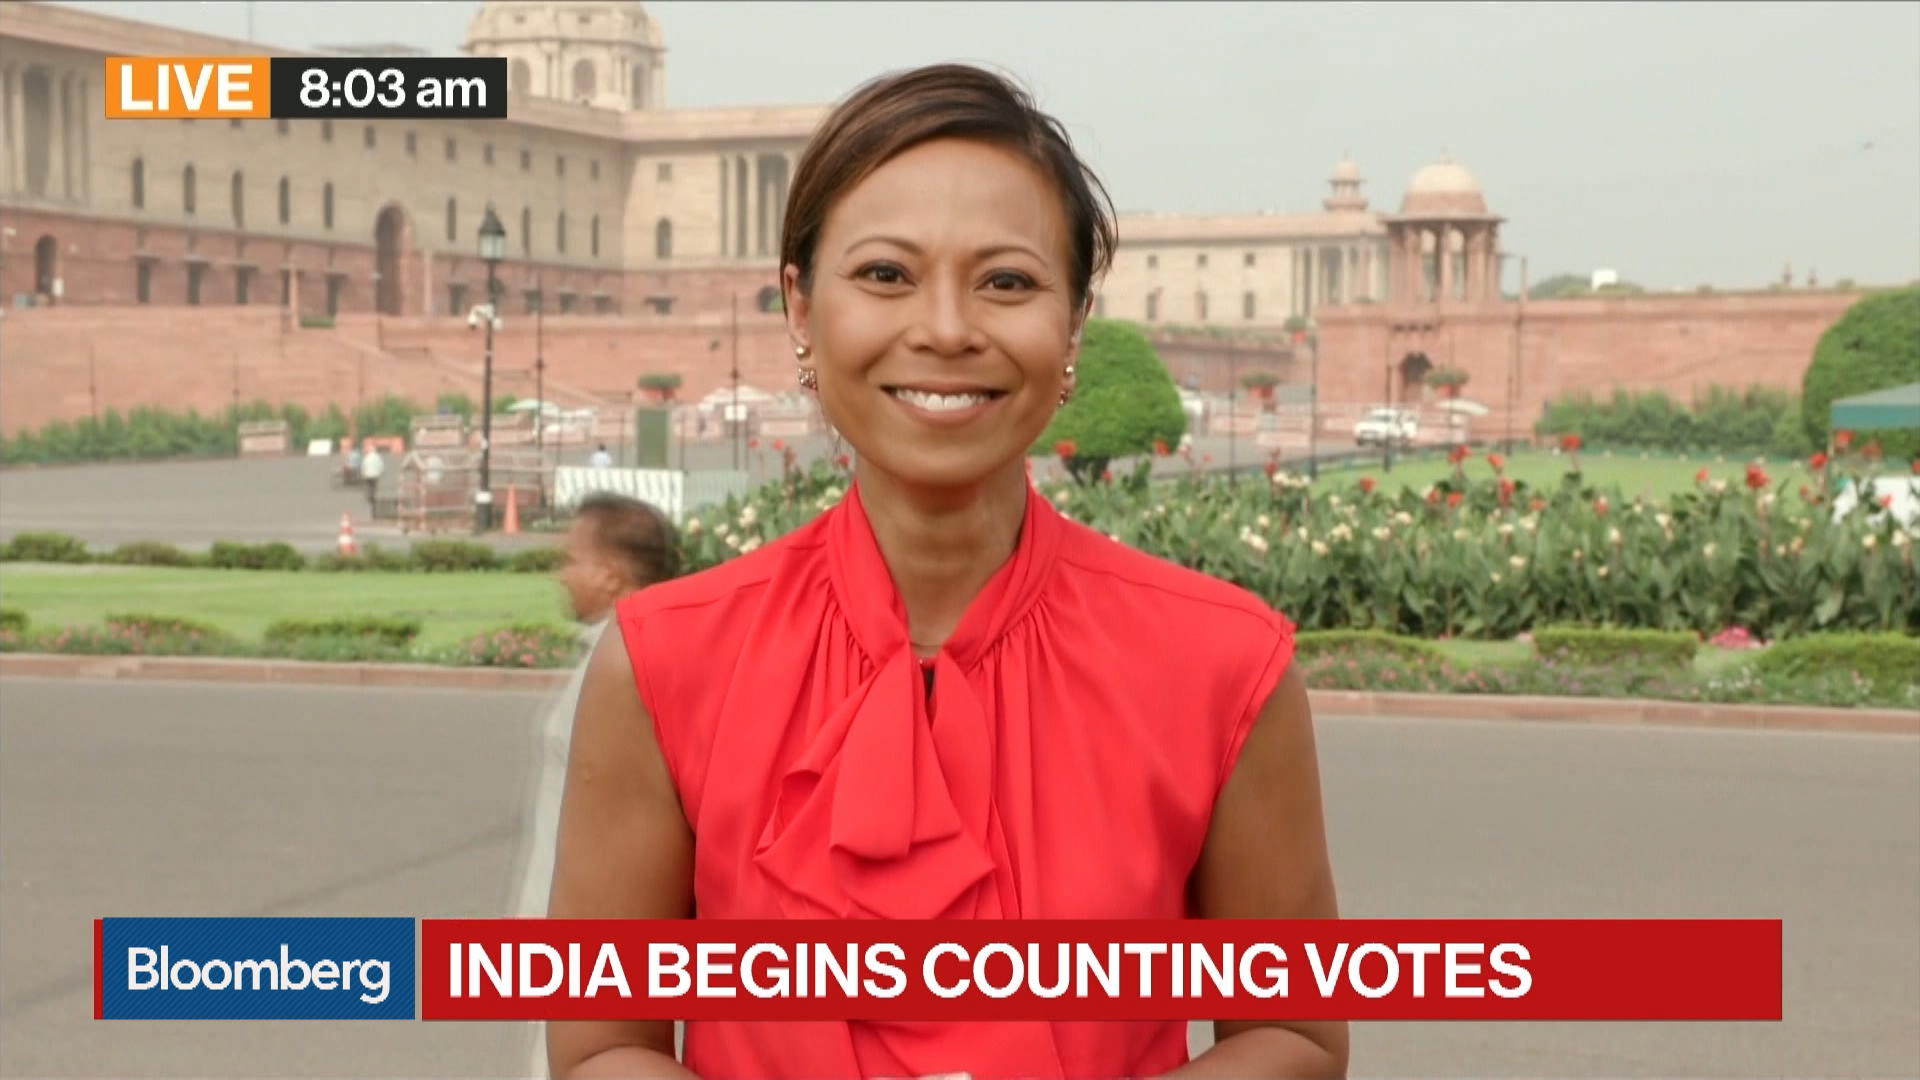 India Begins Counting Votes